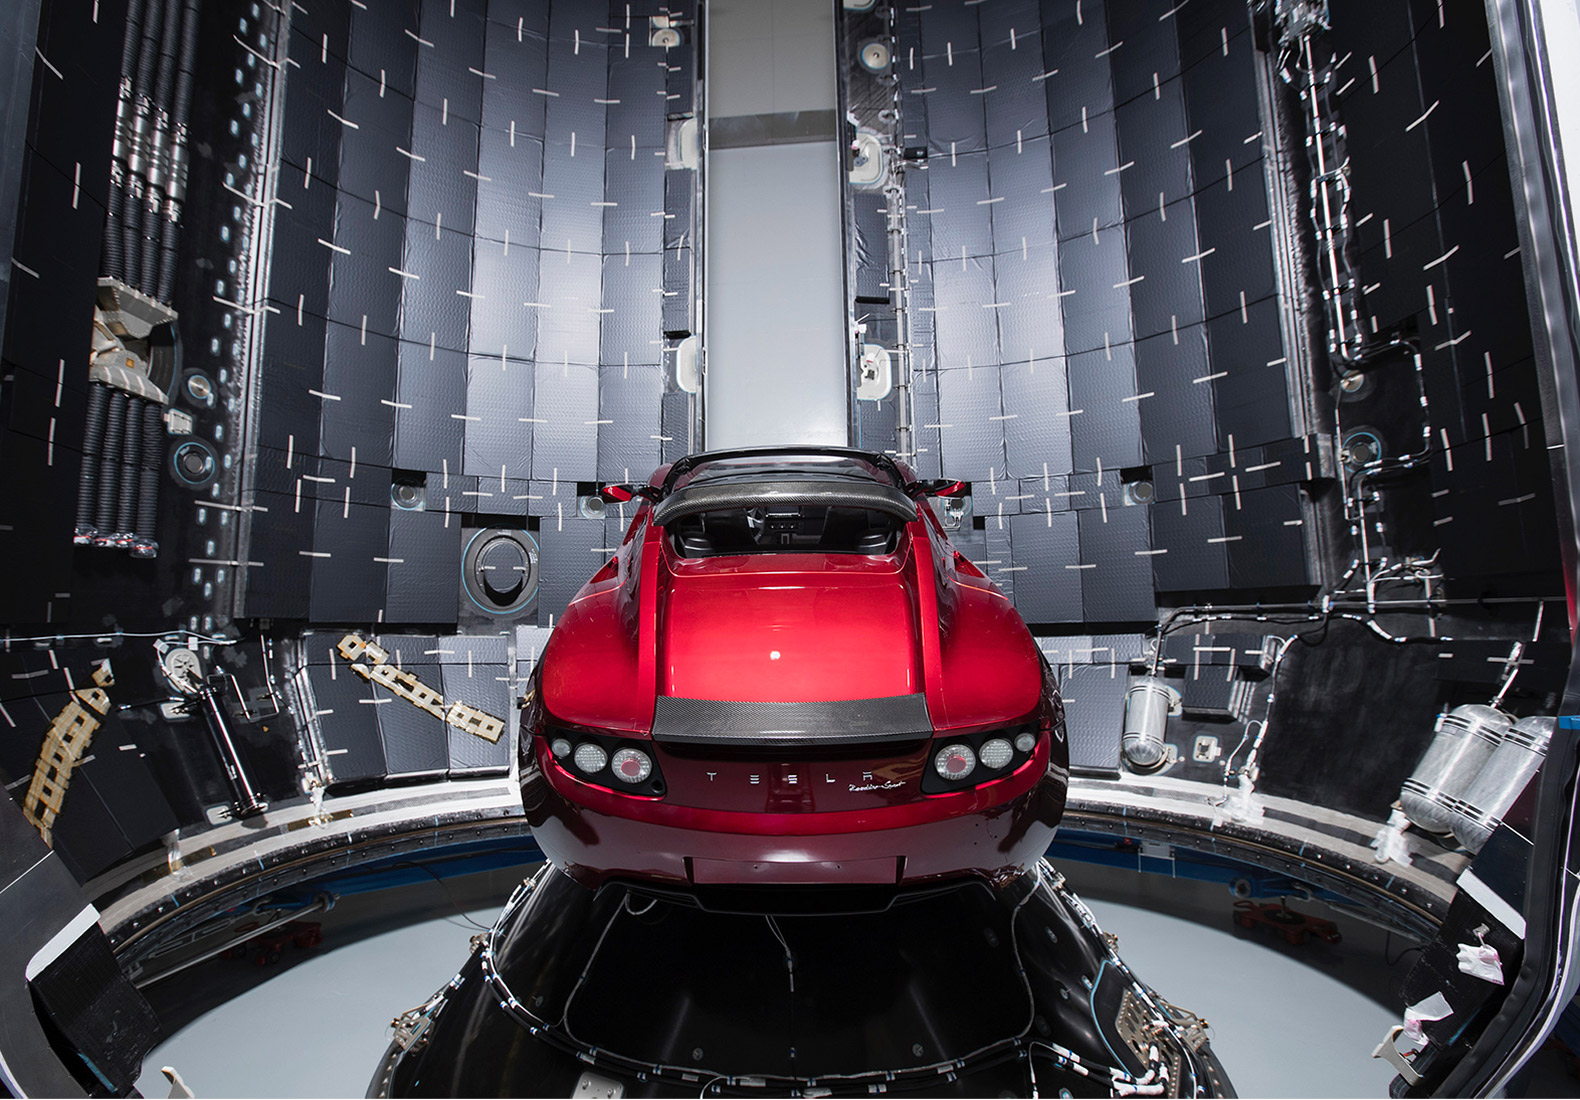 elon musk shares pictures of his red tesla roadster ready to blast off to mars